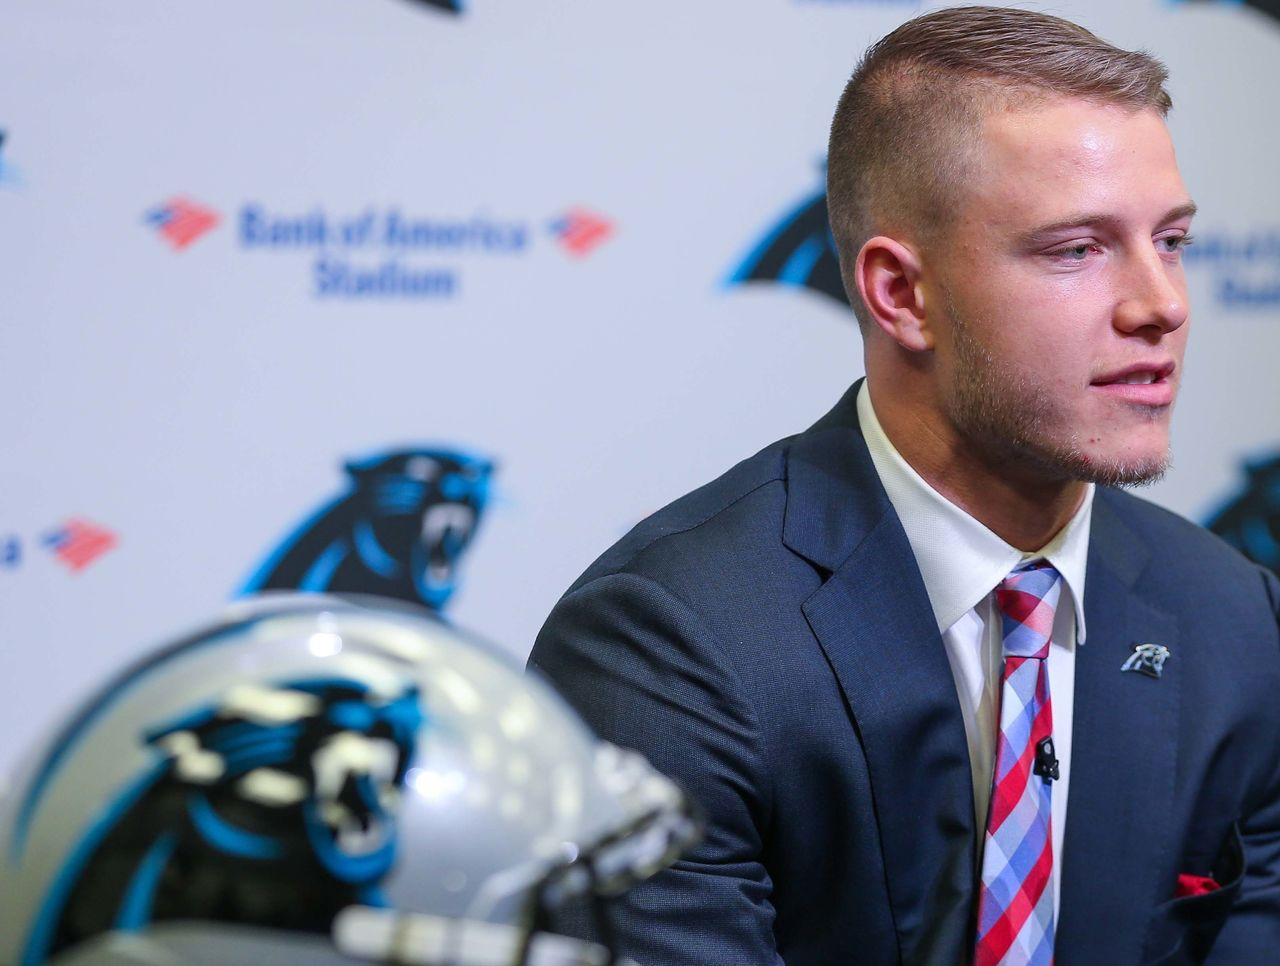 Cropped_2017-04-28t223242z_2003831822_nocid_rtrmadp_3_nfl-carolina-panthers-christian-mccaffrey-press-conference